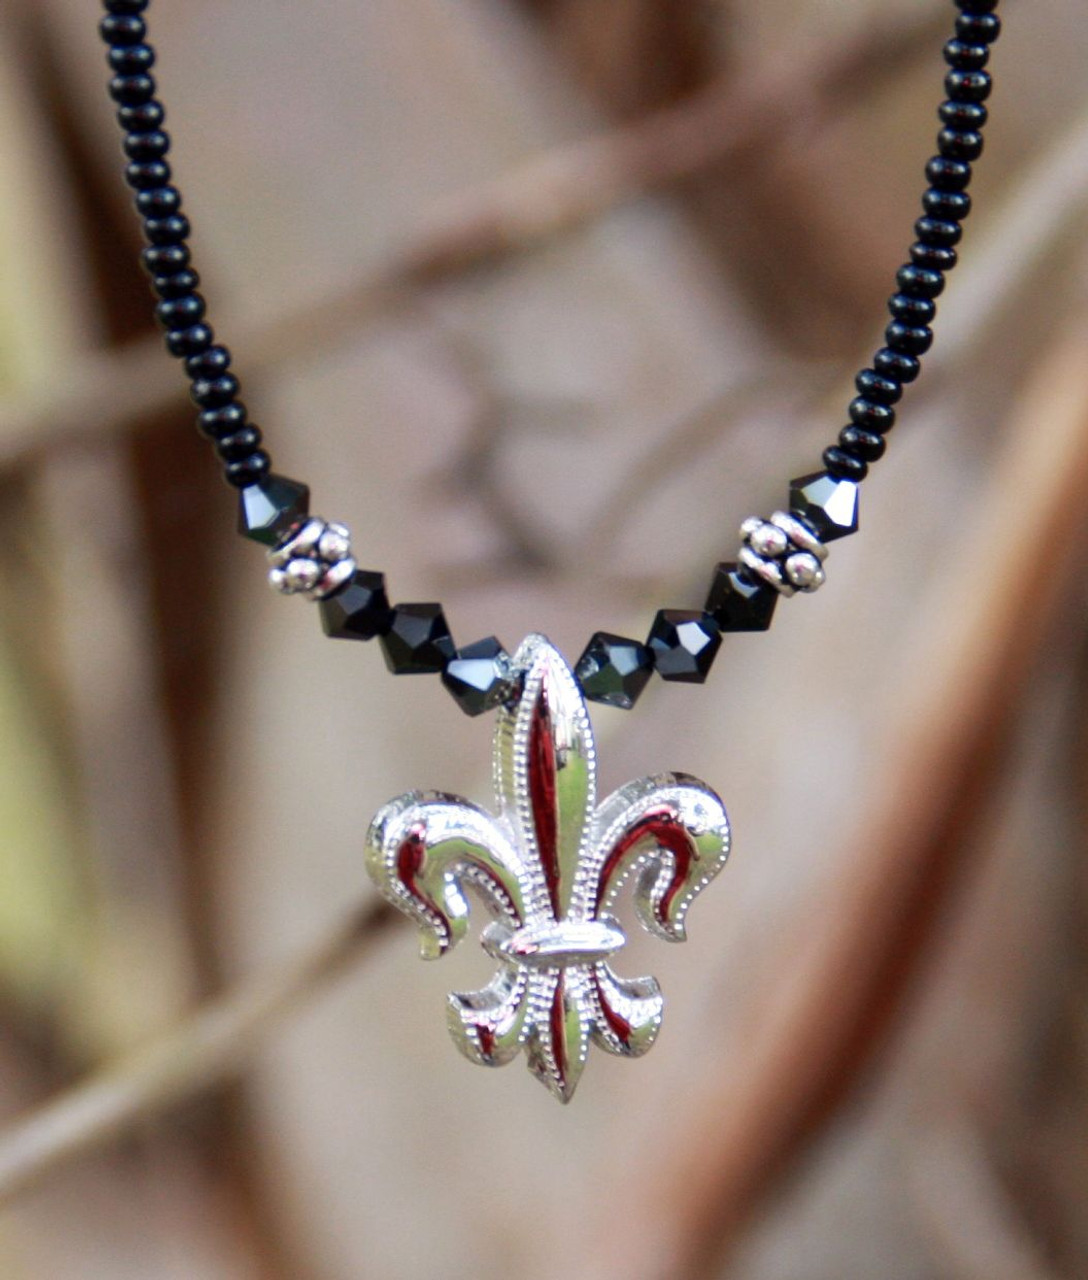 NCK-84 Fleur de Lis Black and Silver Beaded Necklace